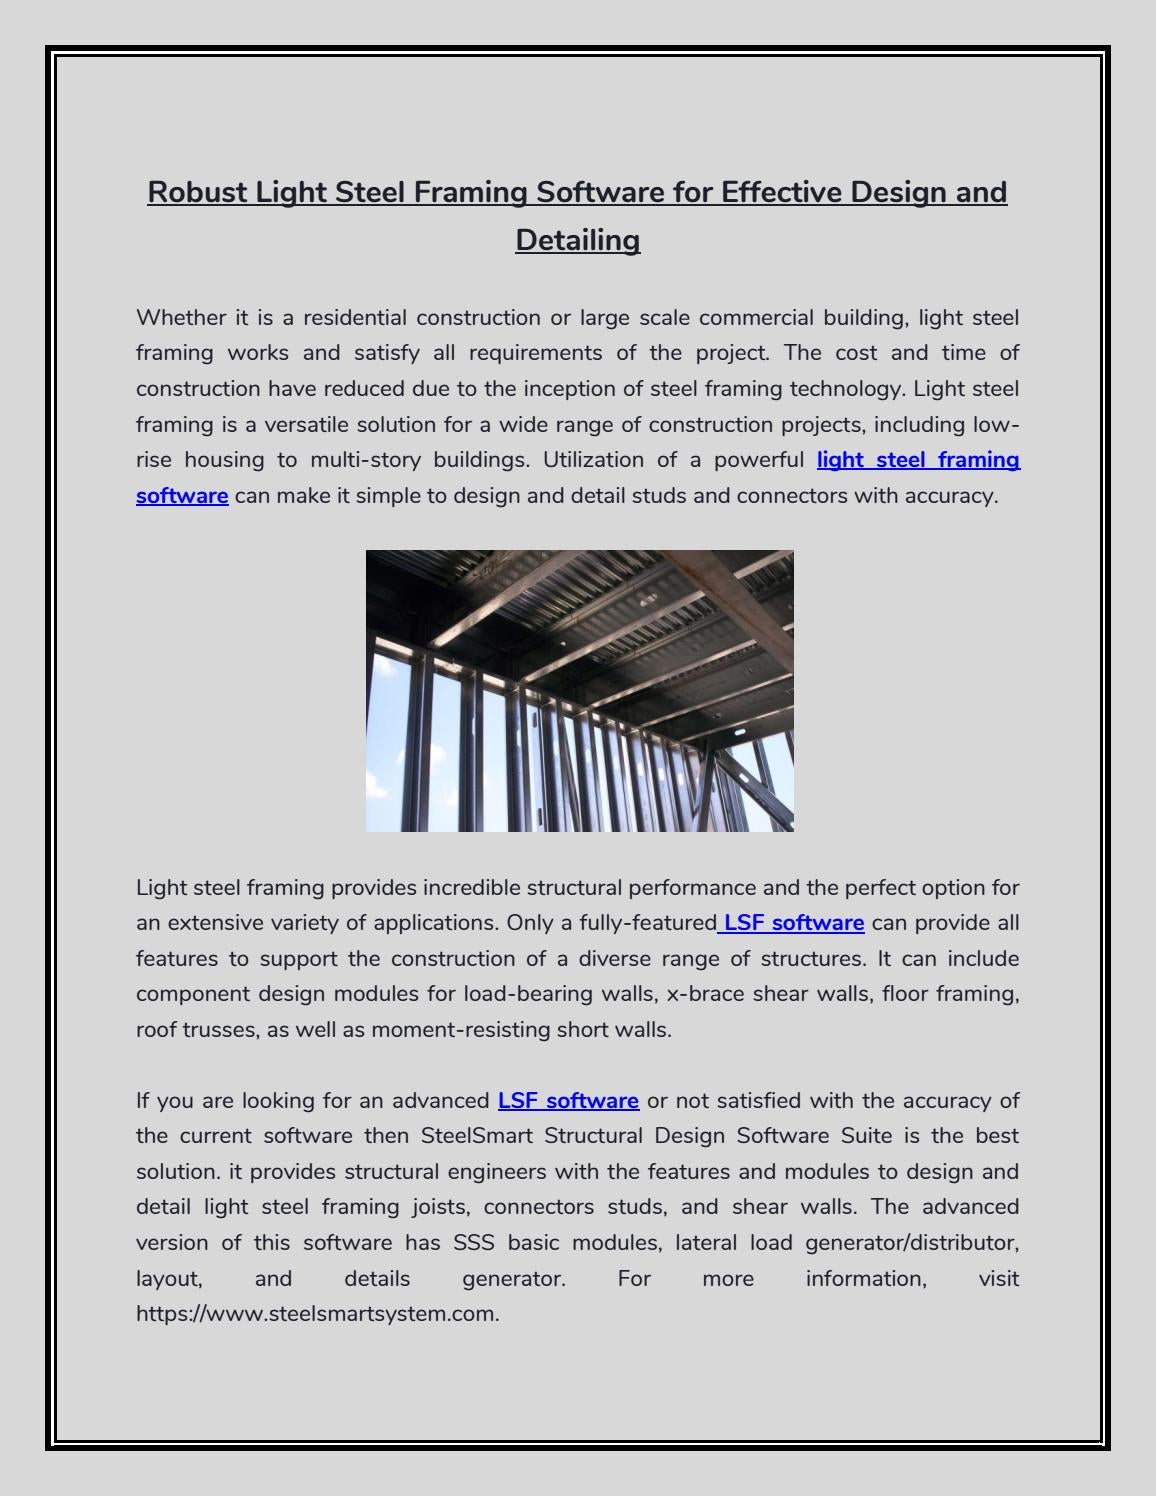 Robust Light Steel Framing Software For Effective Design And Detailing By Steel Smart System Issuu